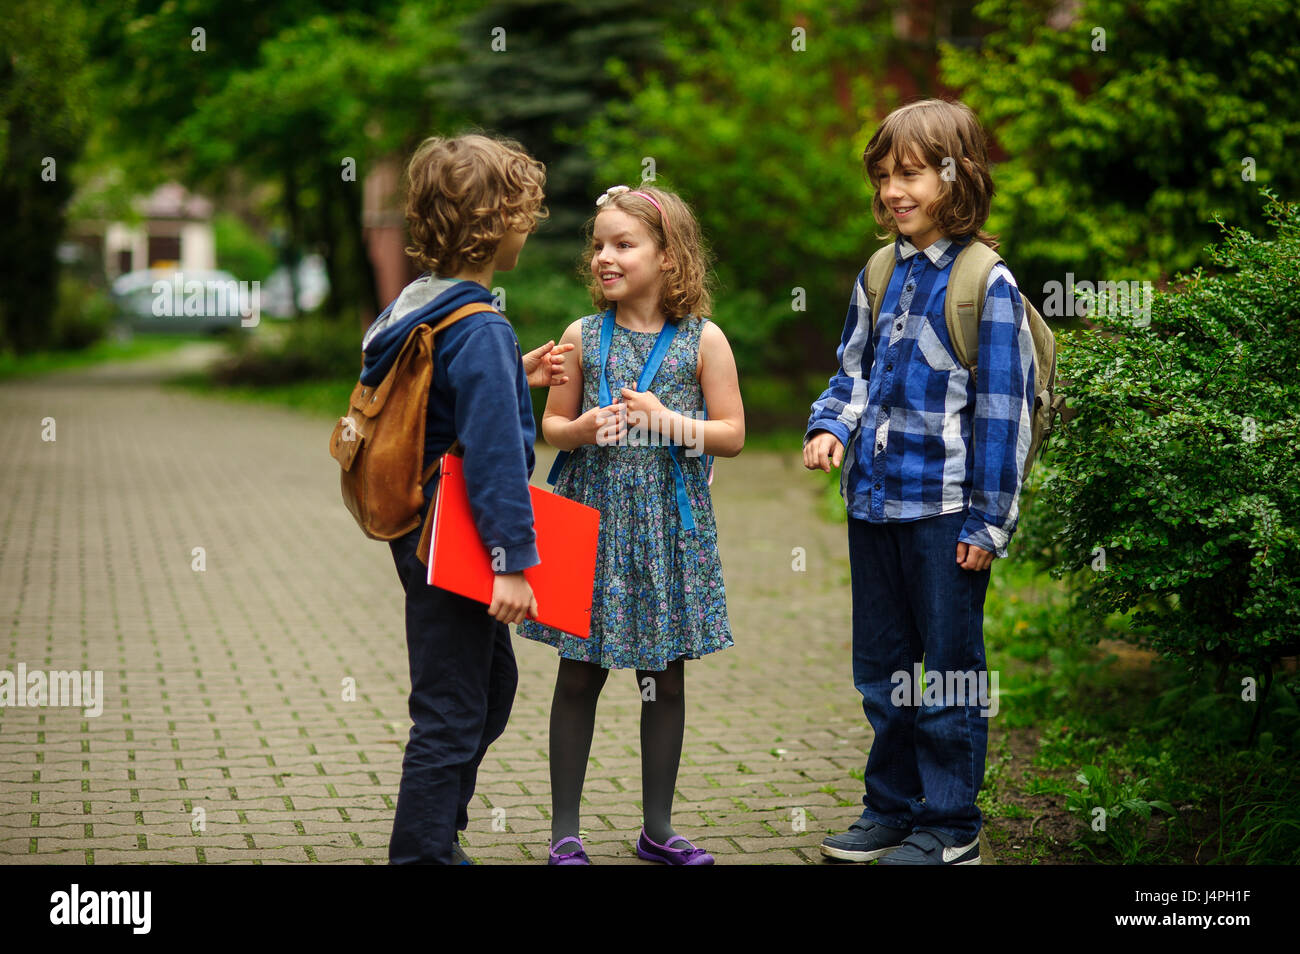 Little school students briskly and cheerfully talk on the schoolyard. Two boys and the girl have fun waiting for - Stock Image